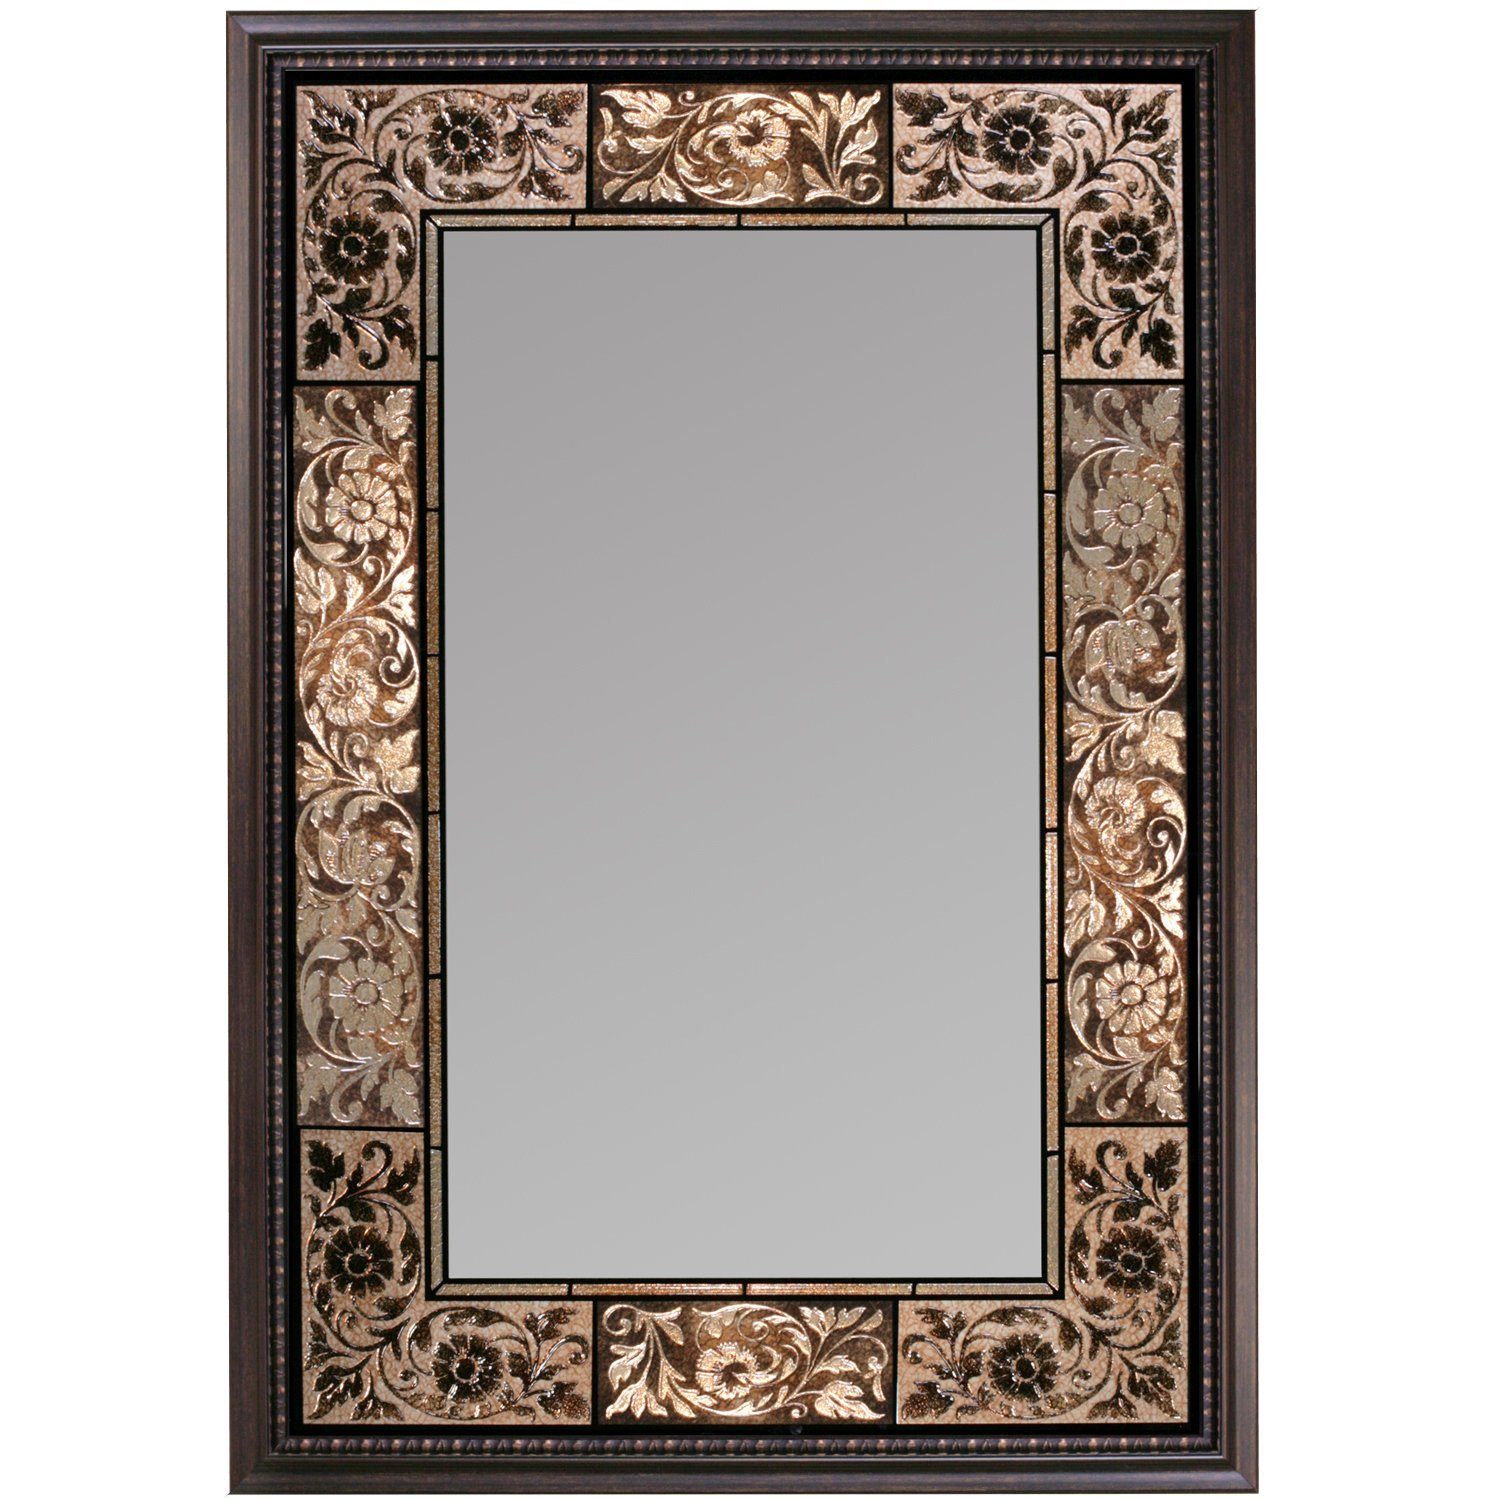 manufactured mirror